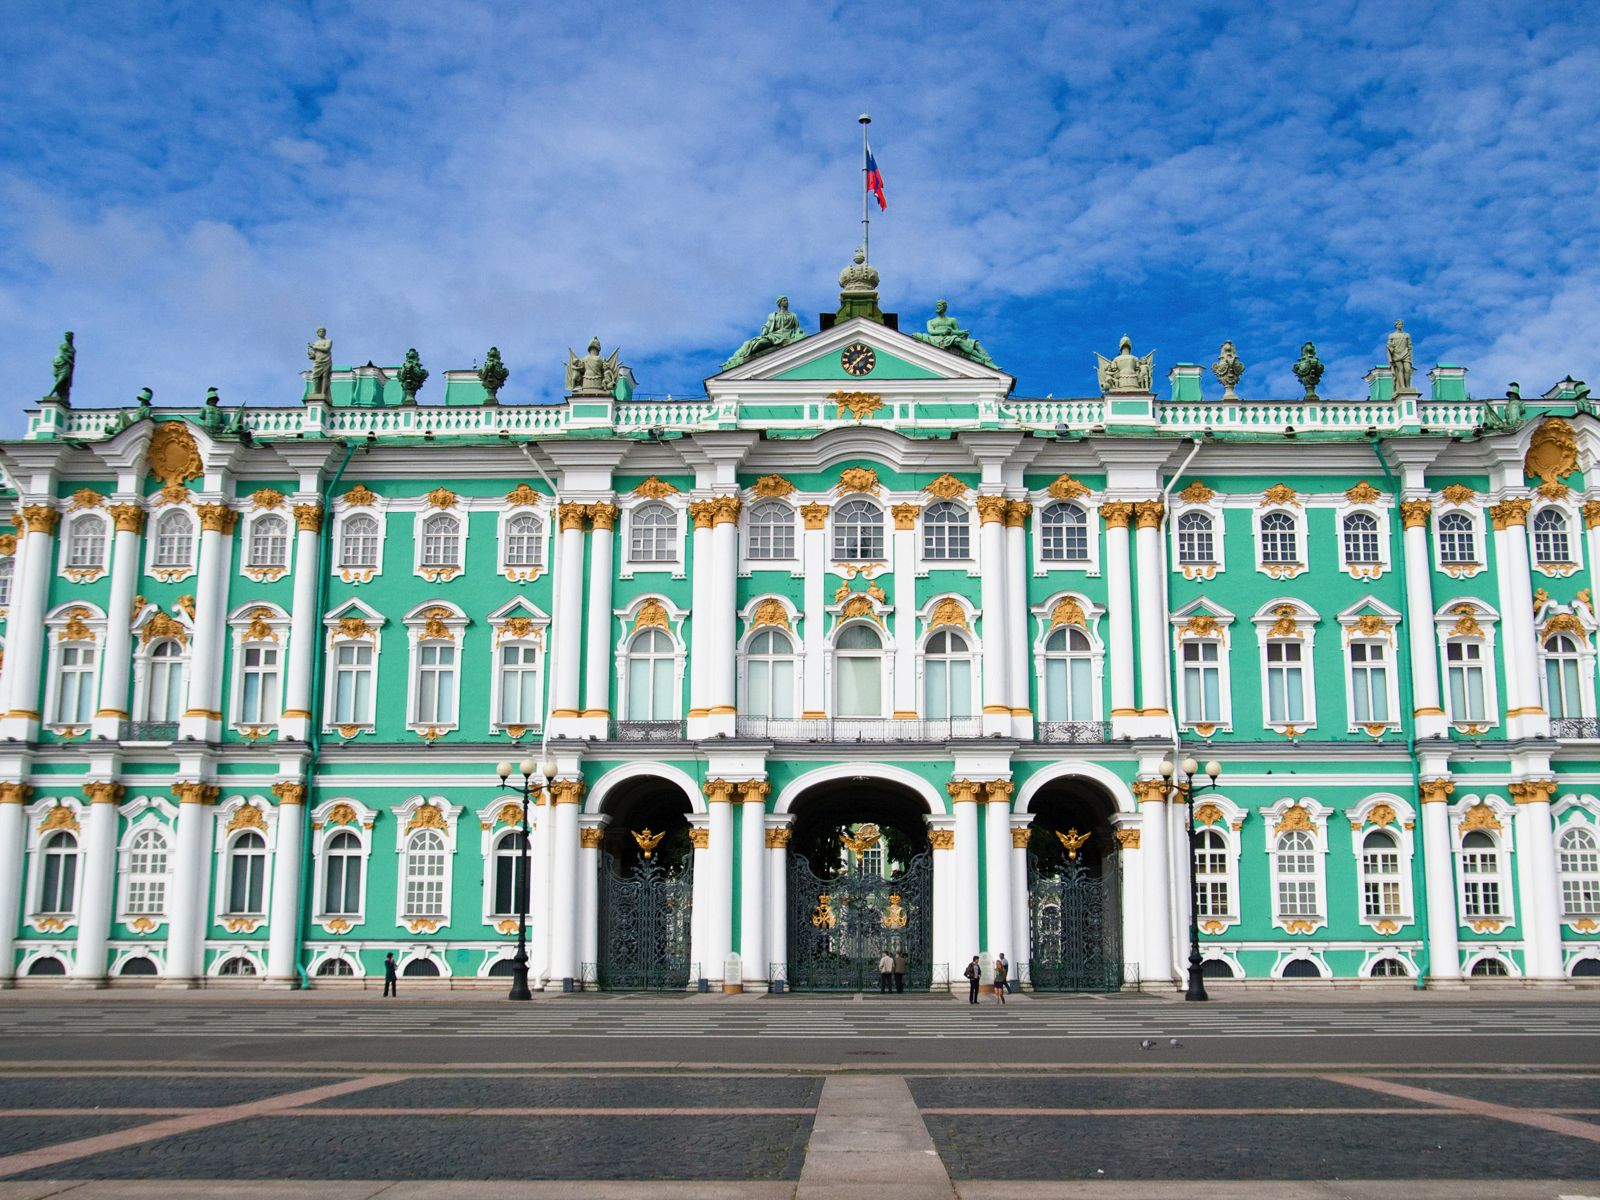 11 Amazing Royal Palaces Across The World You Have To Visit! (10)